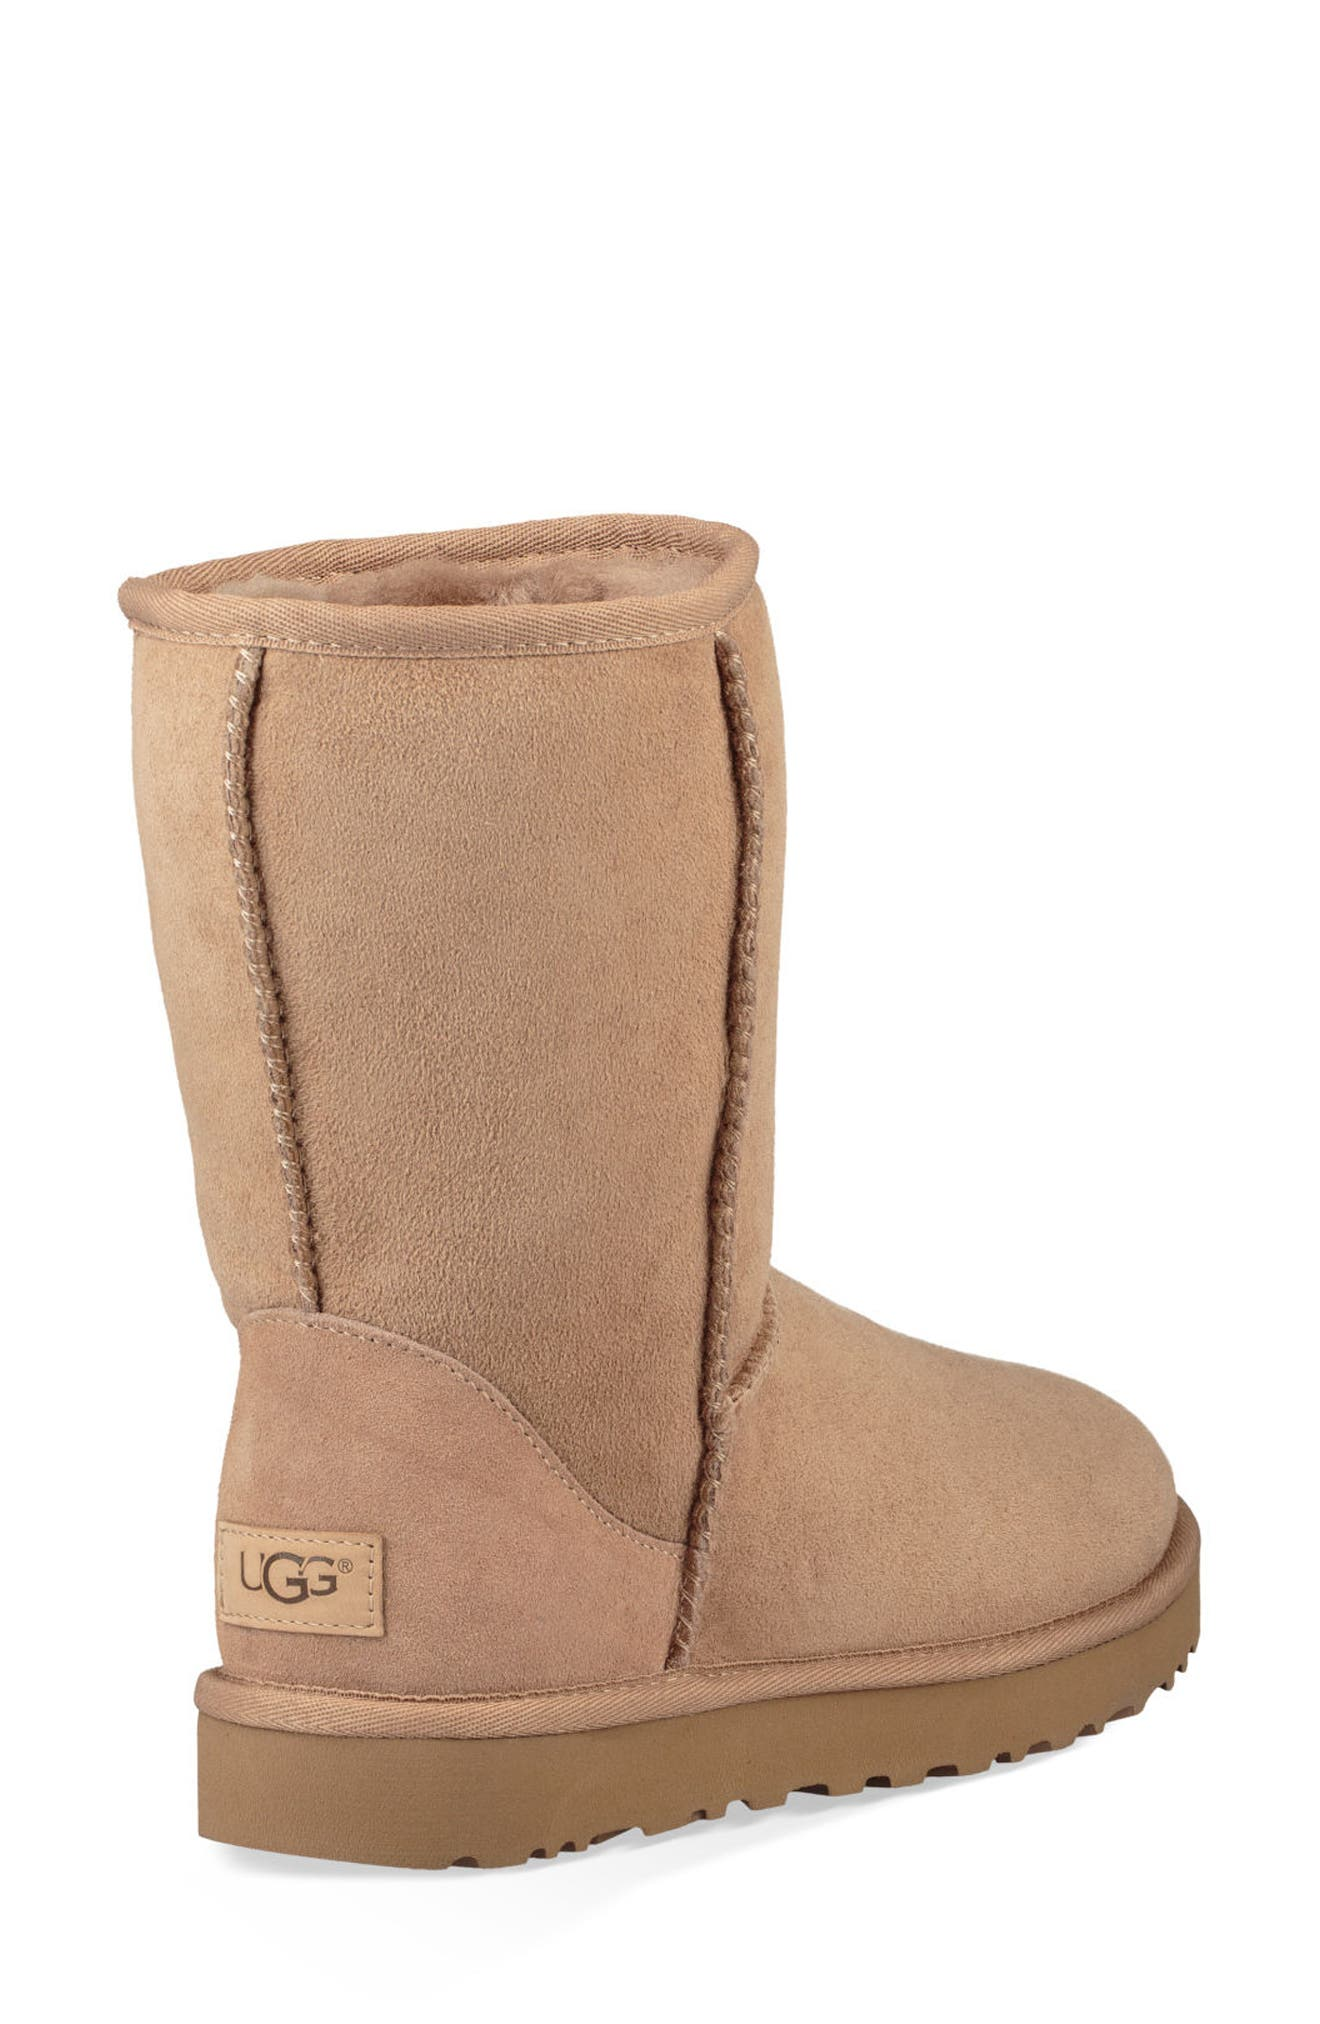 'Classic II' Genuine Shearling Lined Short Boot,                             Alternate thumbnail 2, color,                             Fawn Suede